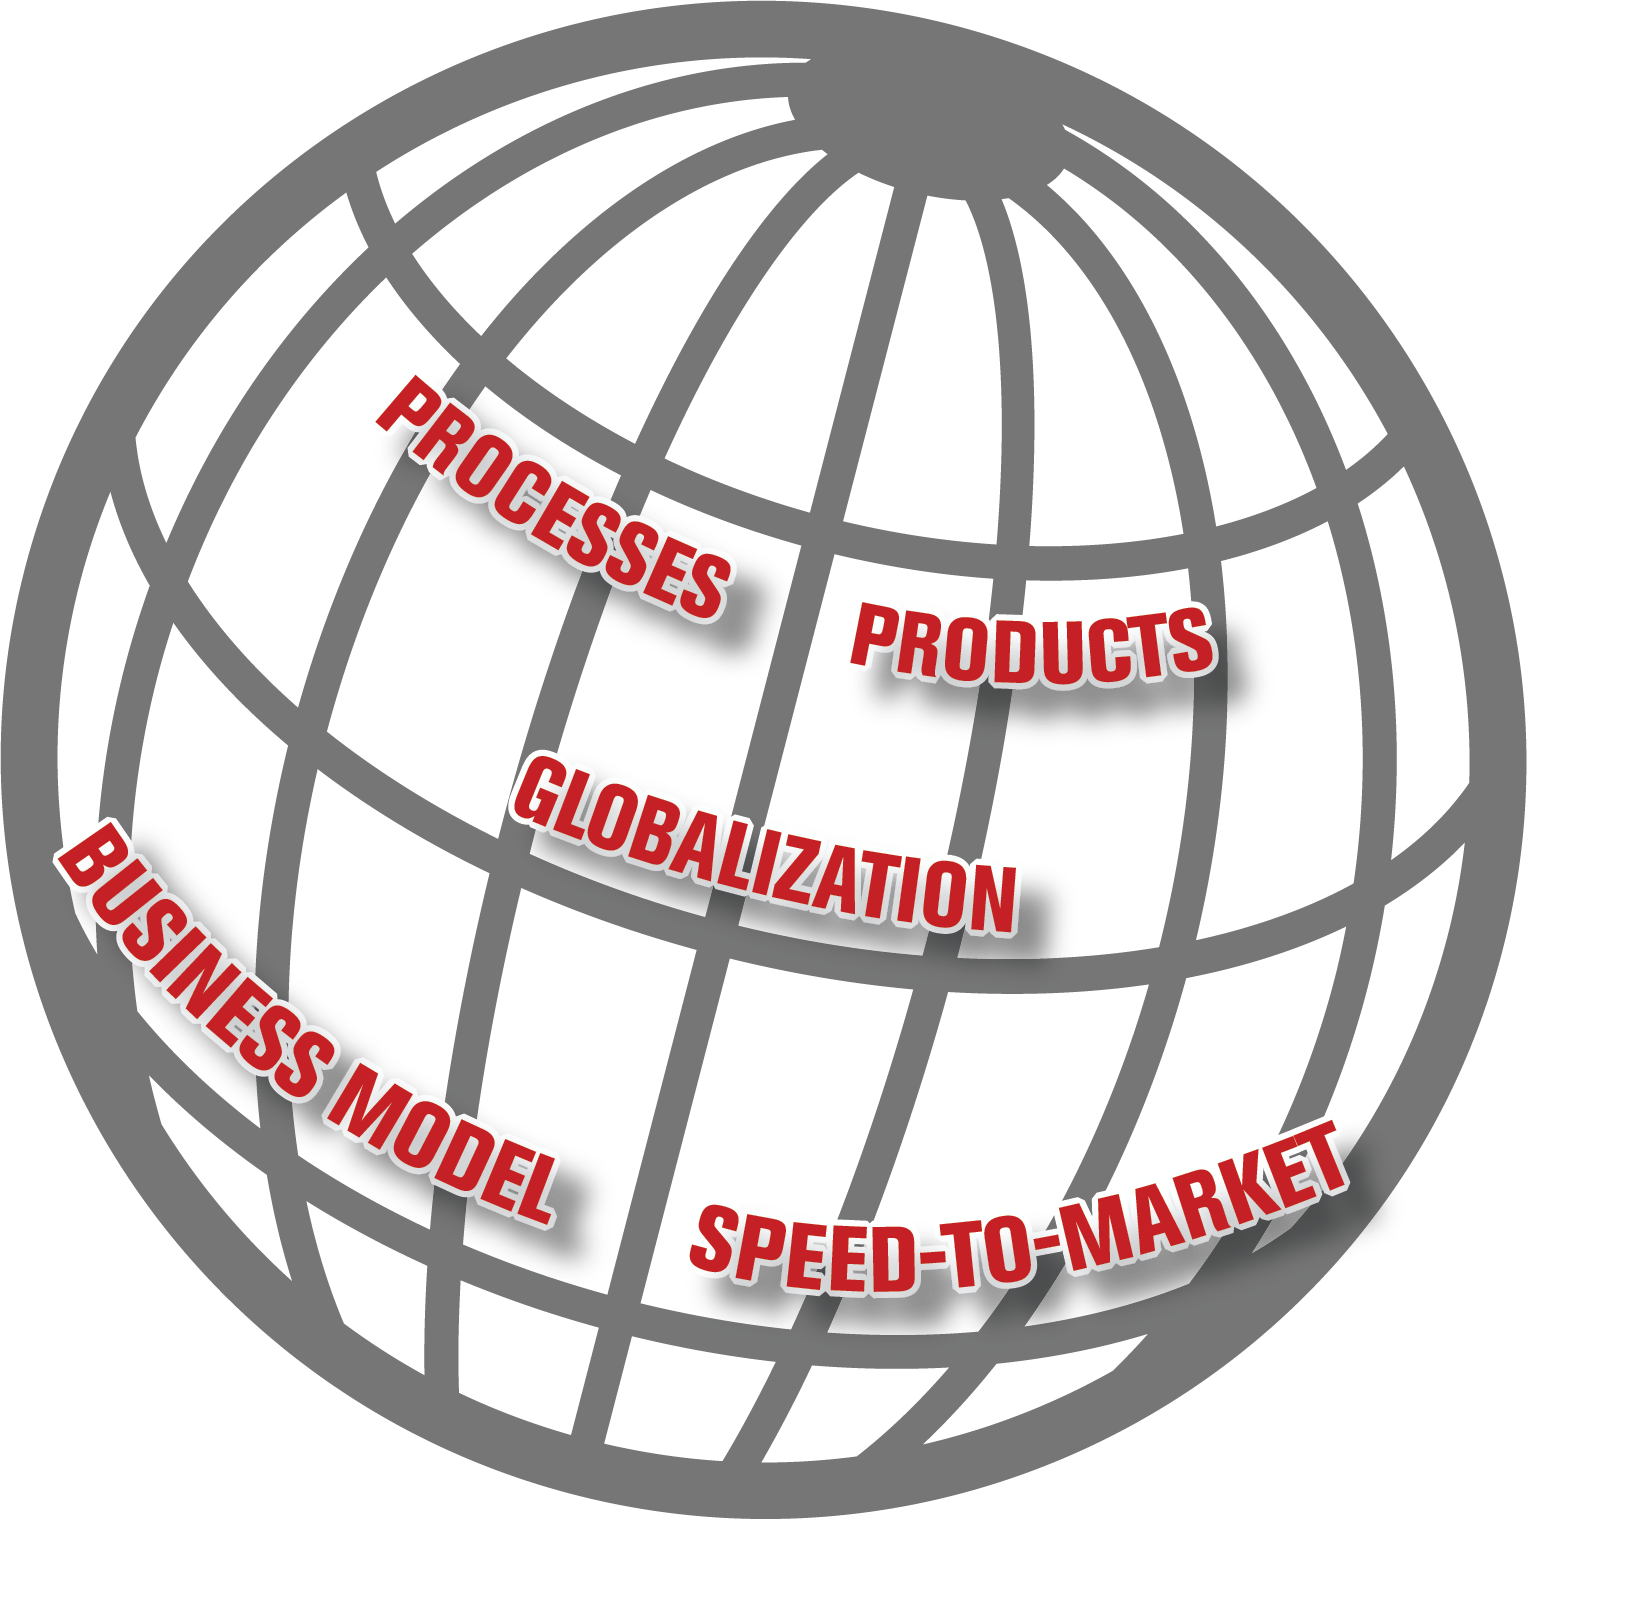 Globe with the words Process, Producs, Globalization, Business model and Speed-to-Market